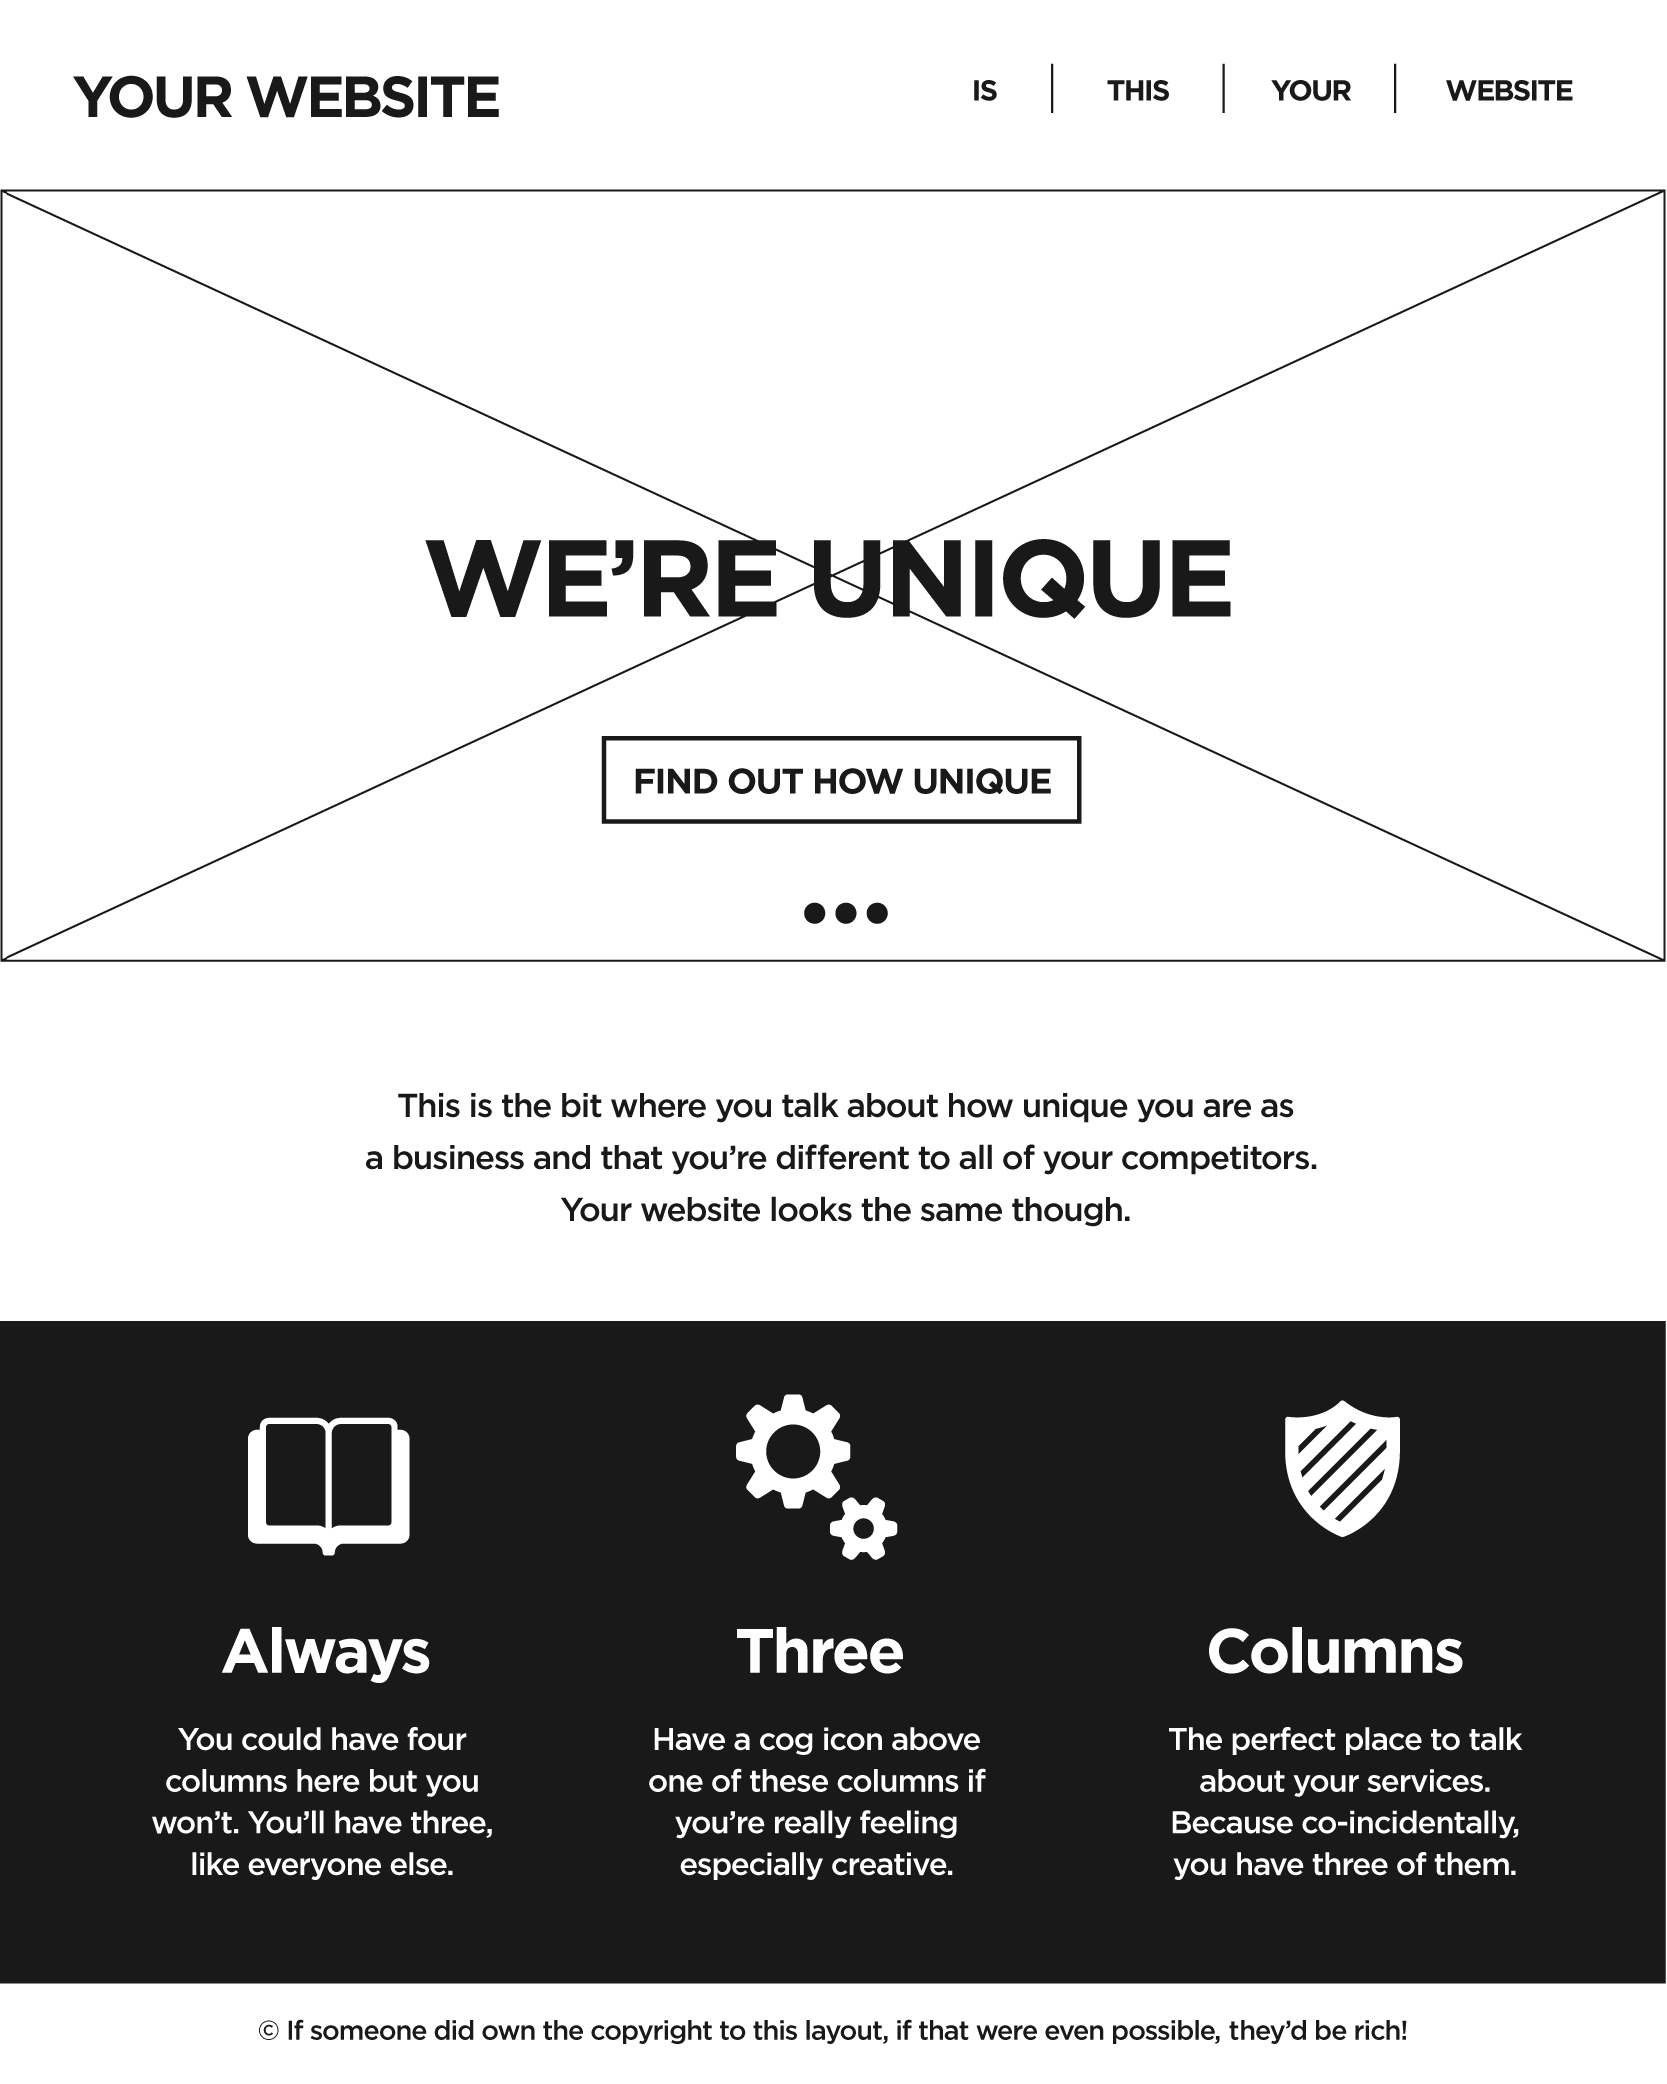 your website template via Dave Ellis